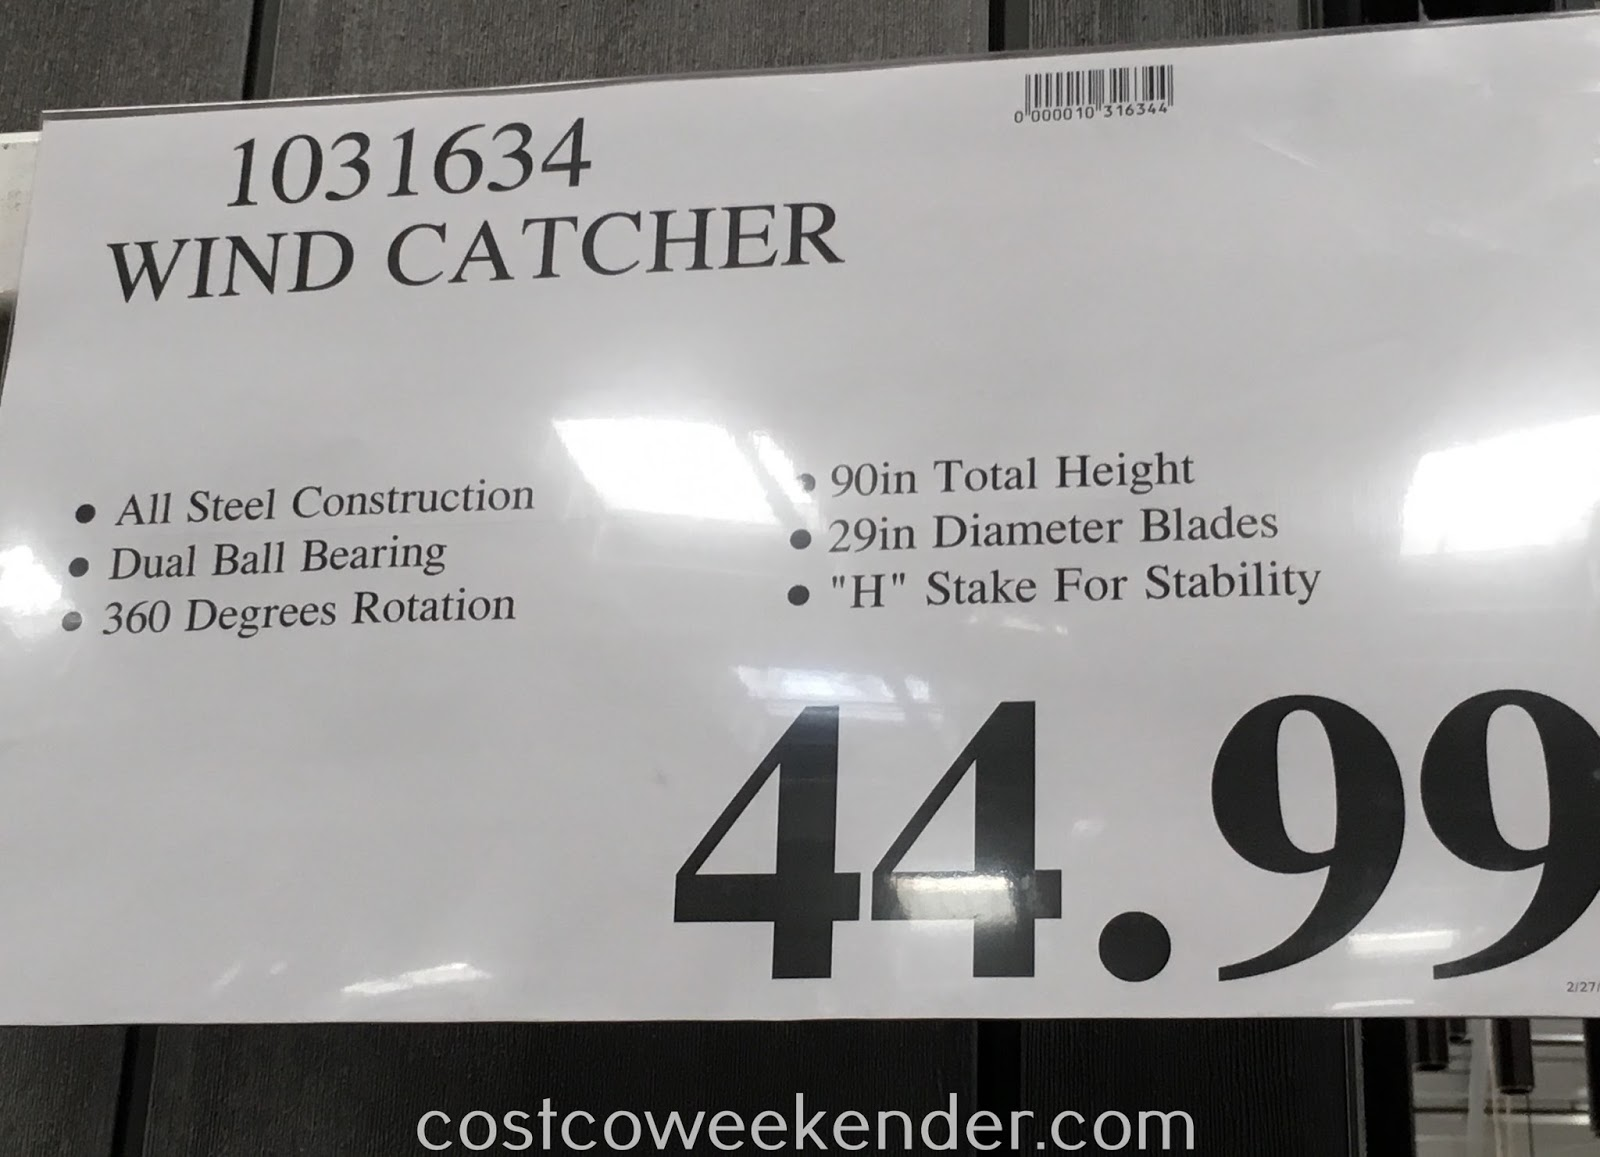 Deal for the Wind Catcher at Costco